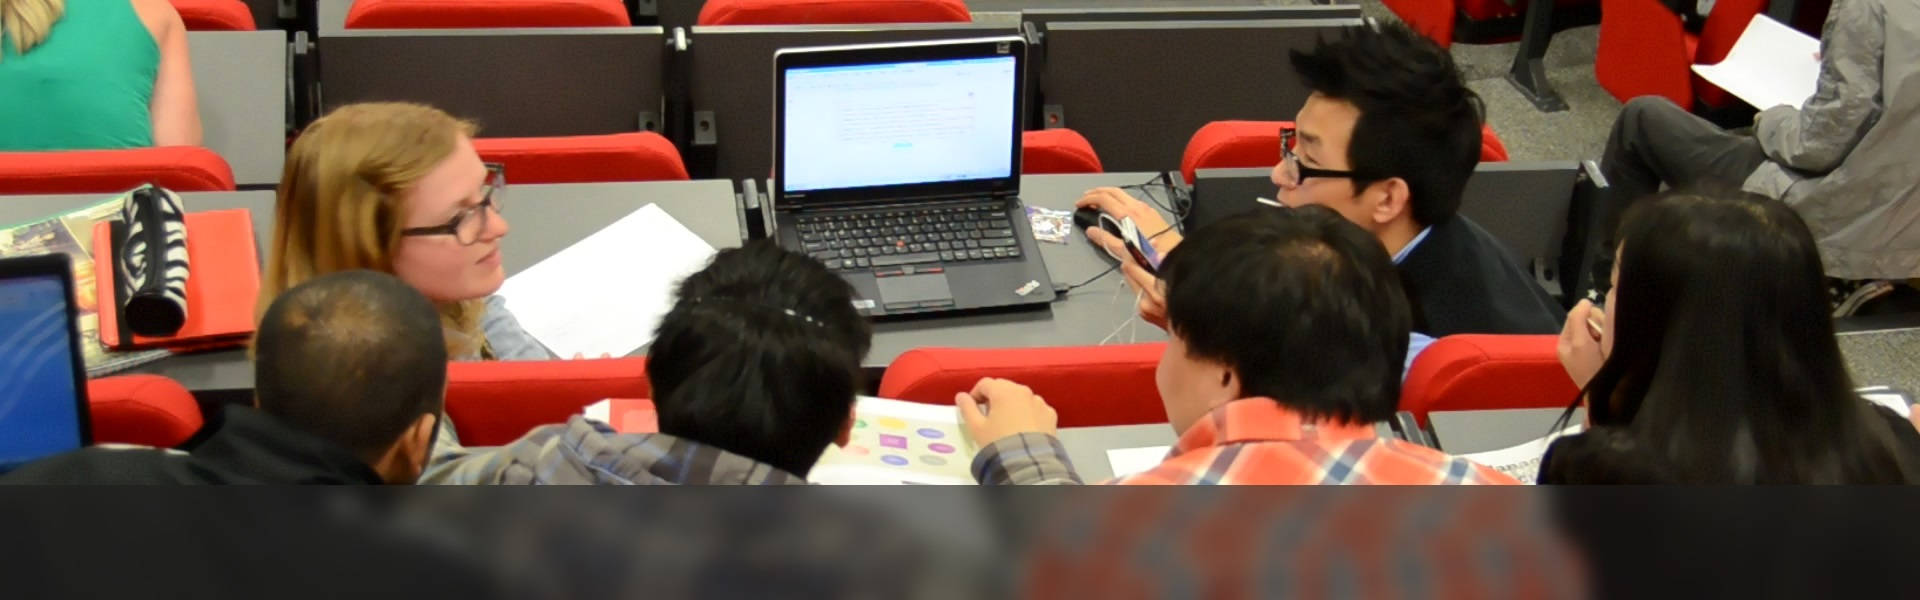 Xorro-Q is the perfect enabling solution for team based learning in class.